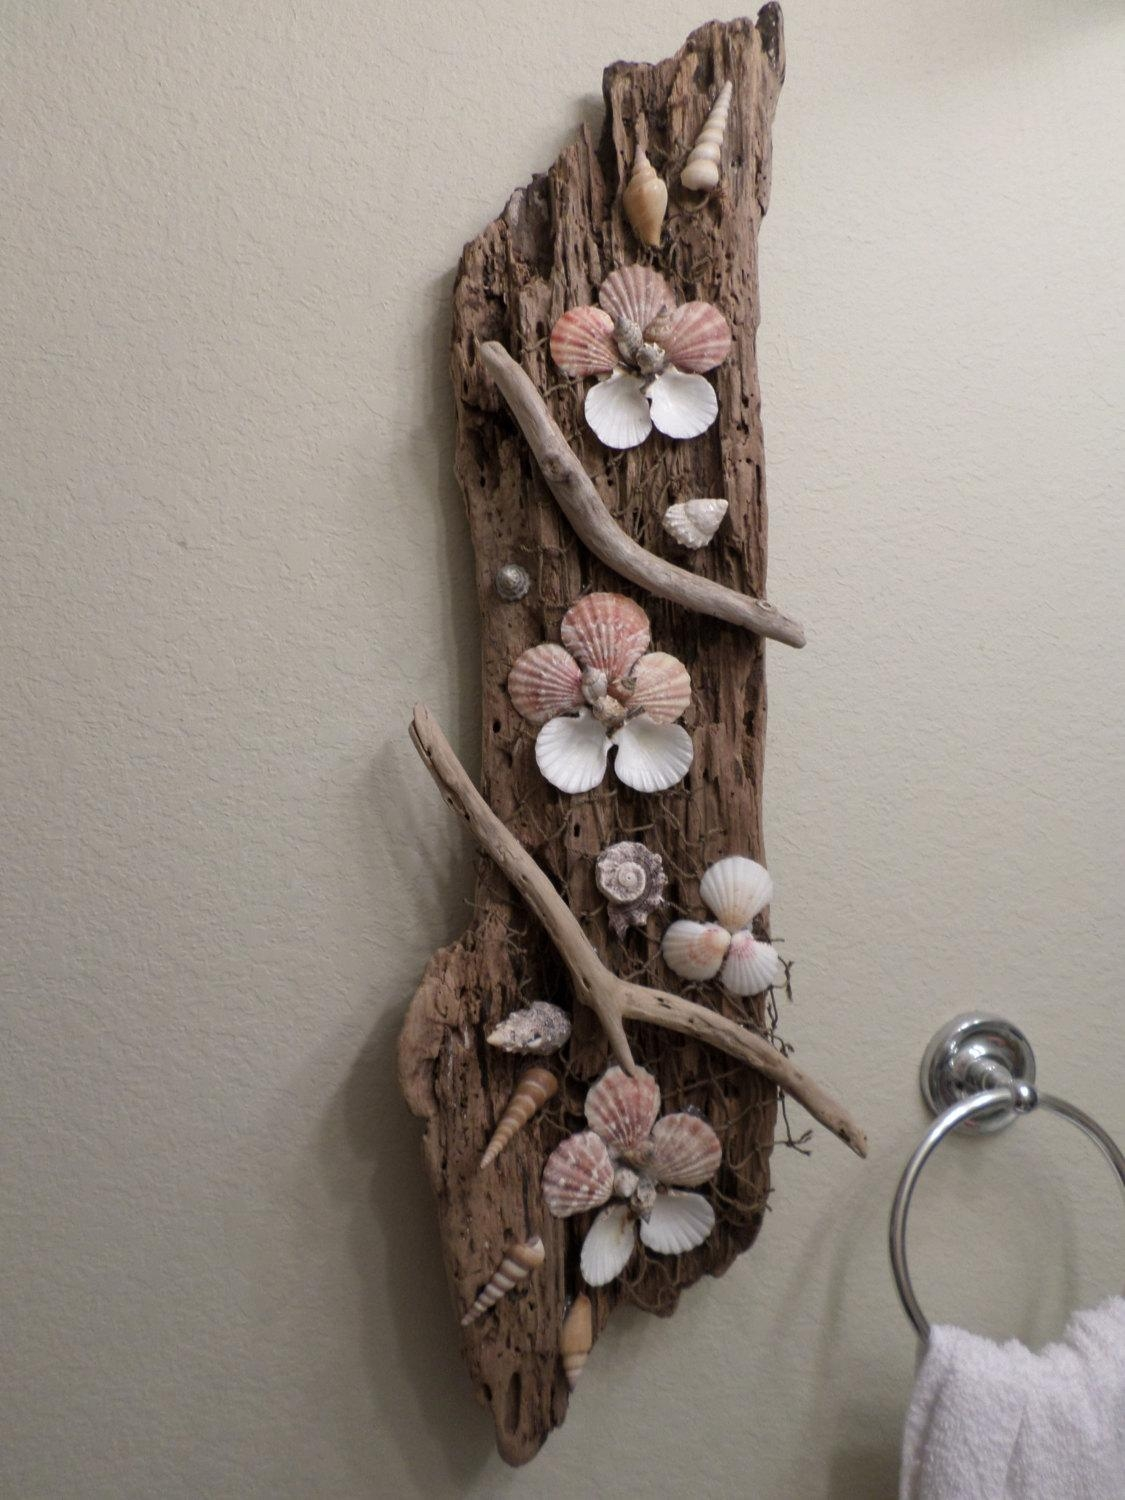 Amazing Large Driftwood Sculpture Ocean Themed Wall Art Throughout Large Driftwood Wall Art (View 3 of 20)